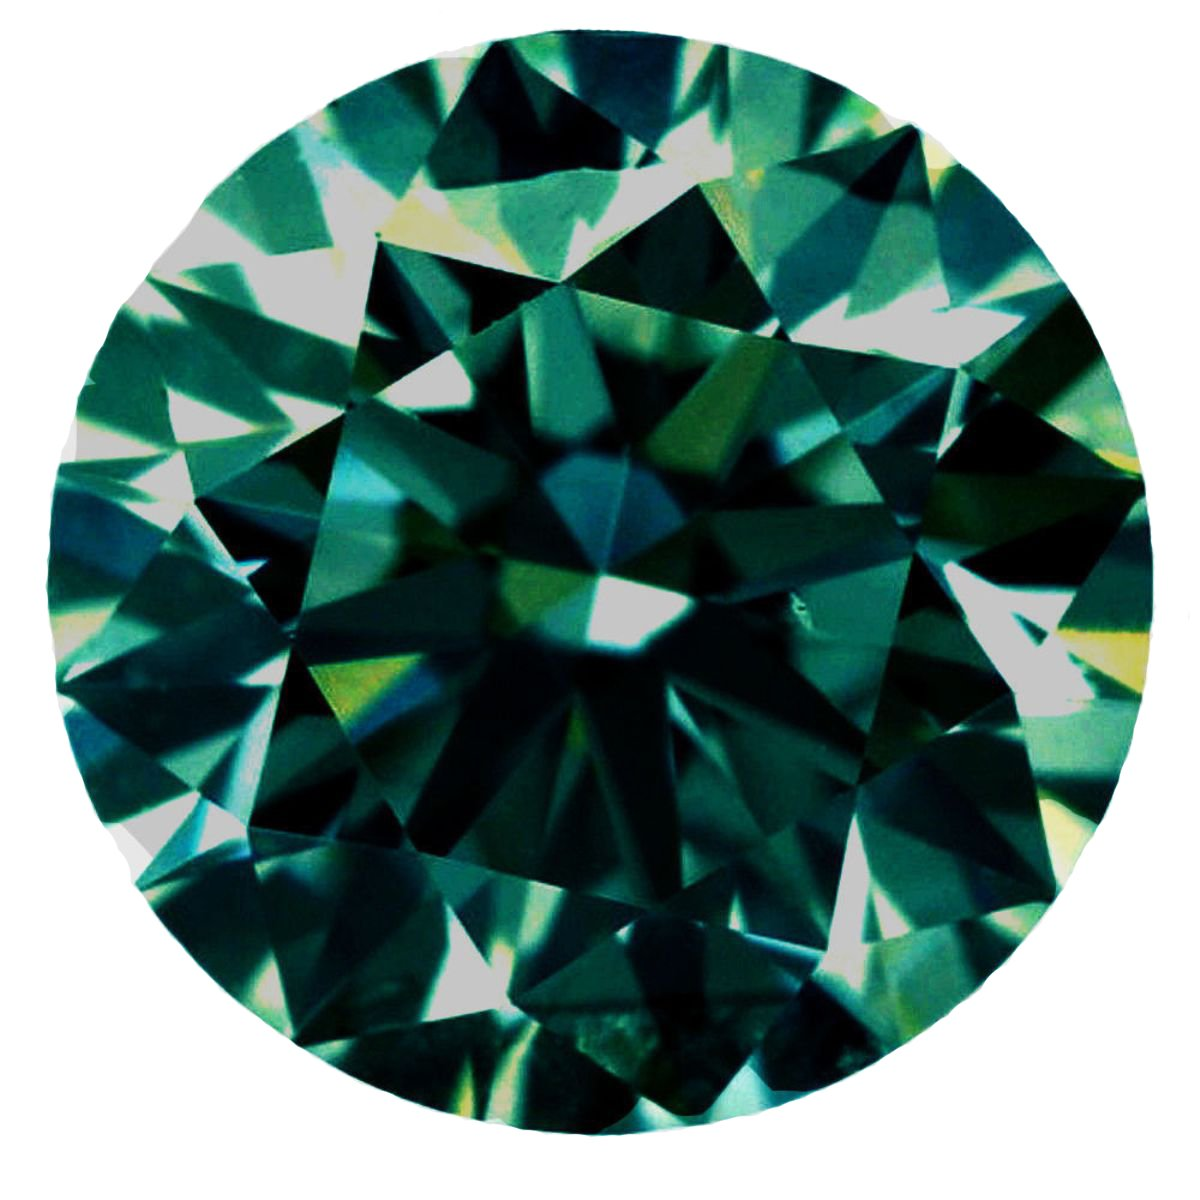 RINGJEWEL 3.00 CT VVS1 9.65 MM Round Cut Loose Real Moissanite Use 4 Pendant/Ring Blueish Green Color by RINGJEWEL